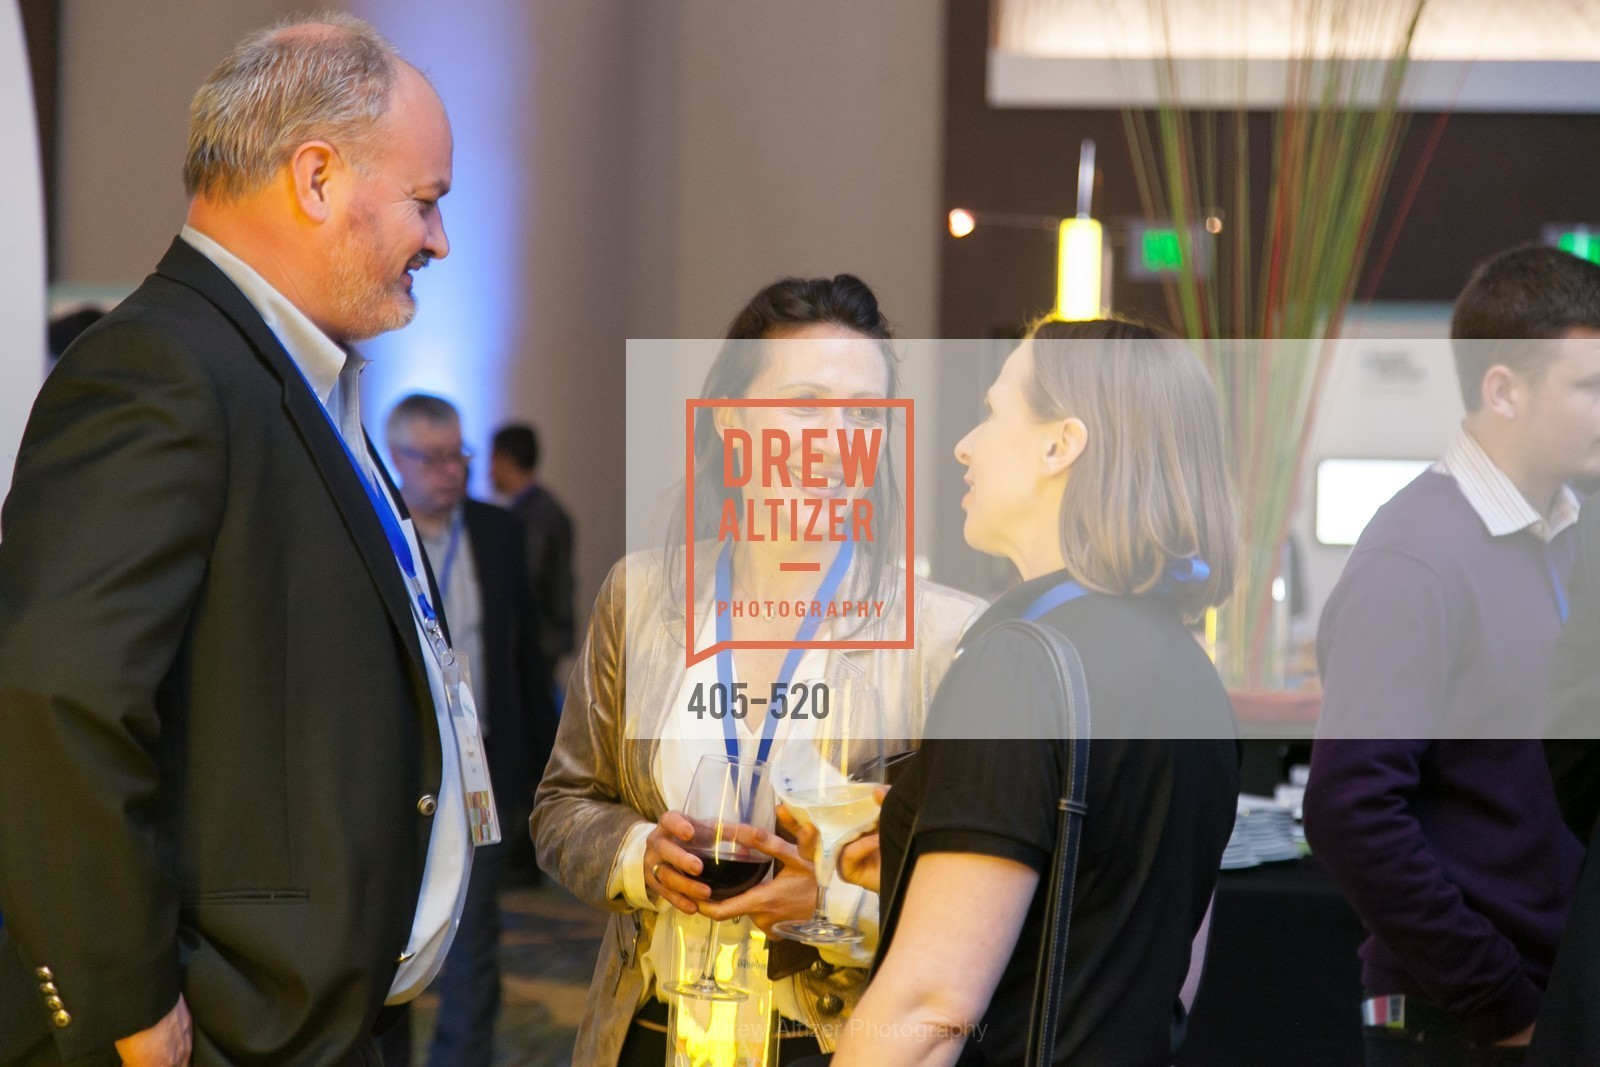 Extras, Coupa Inspire '14, April 17th, 2014, Photo,Drew Altizer, Drew Altizer Photography, full-service agency, private events, San Francisco photographer, photographer california